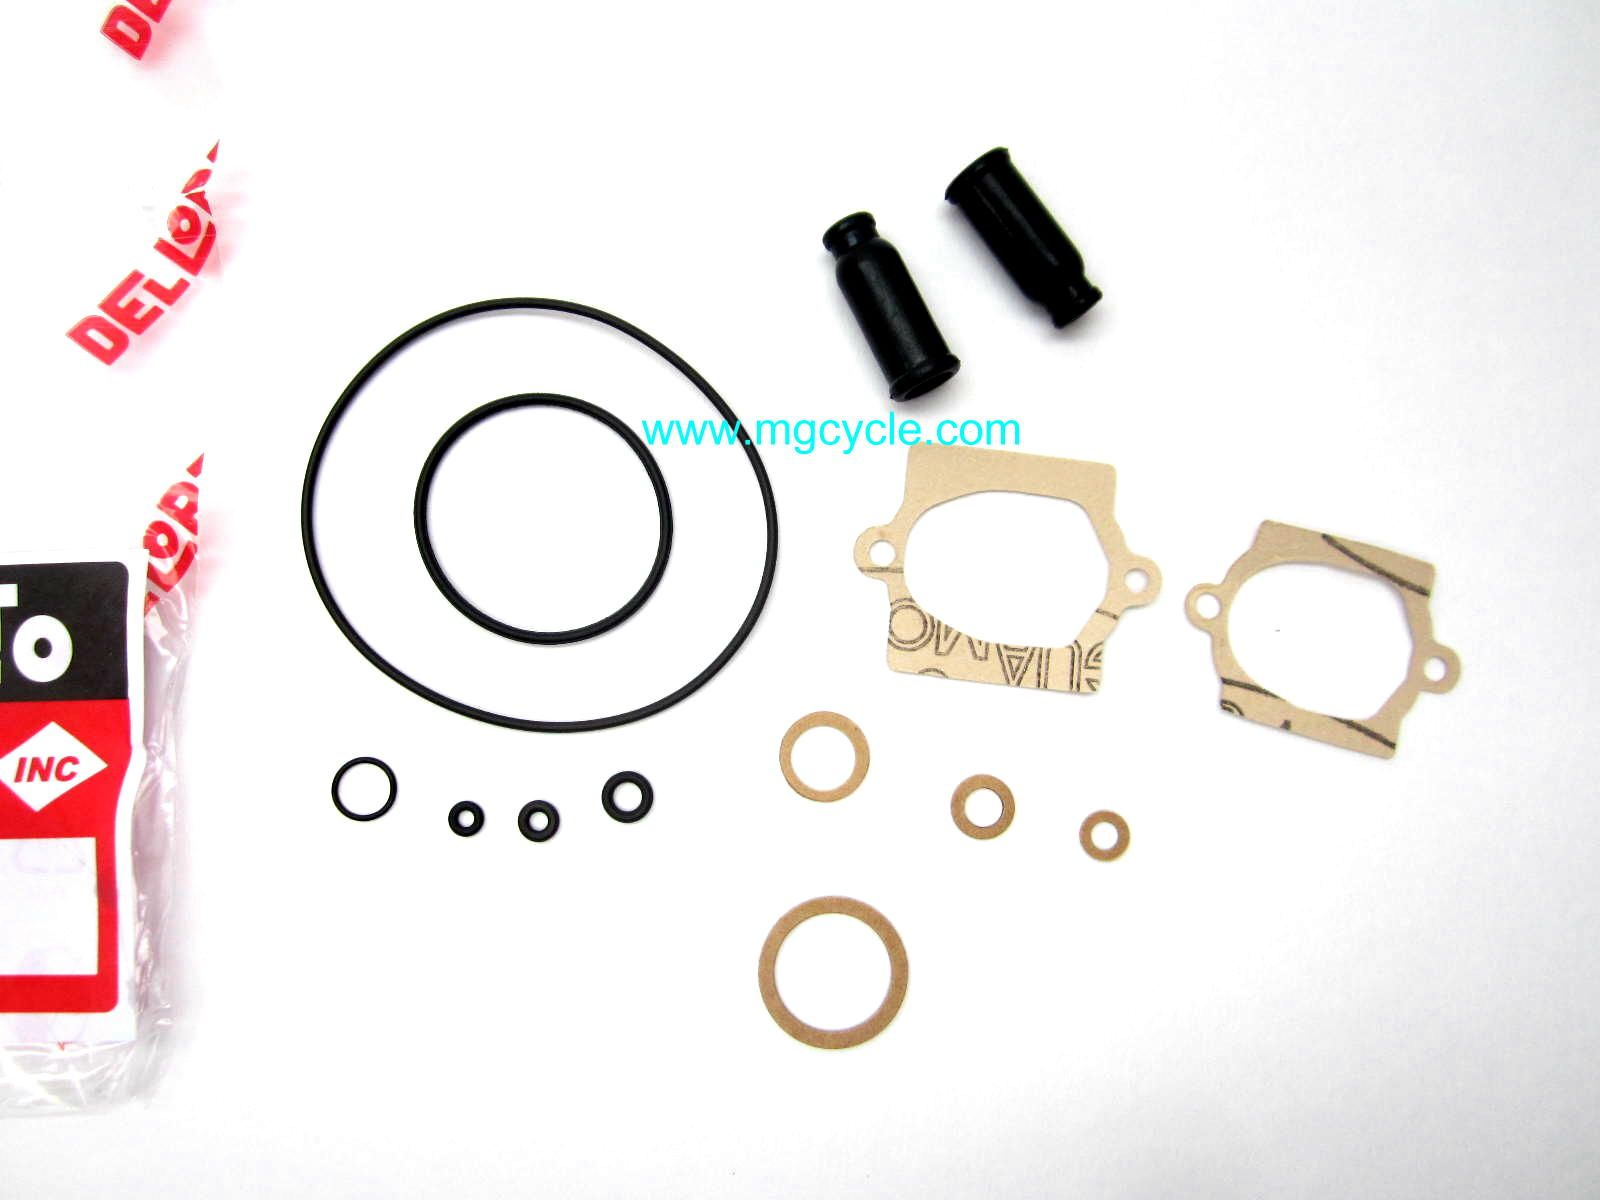 Dellorto gasket kit 17939950 VHB VHBZ VHBT carburetors